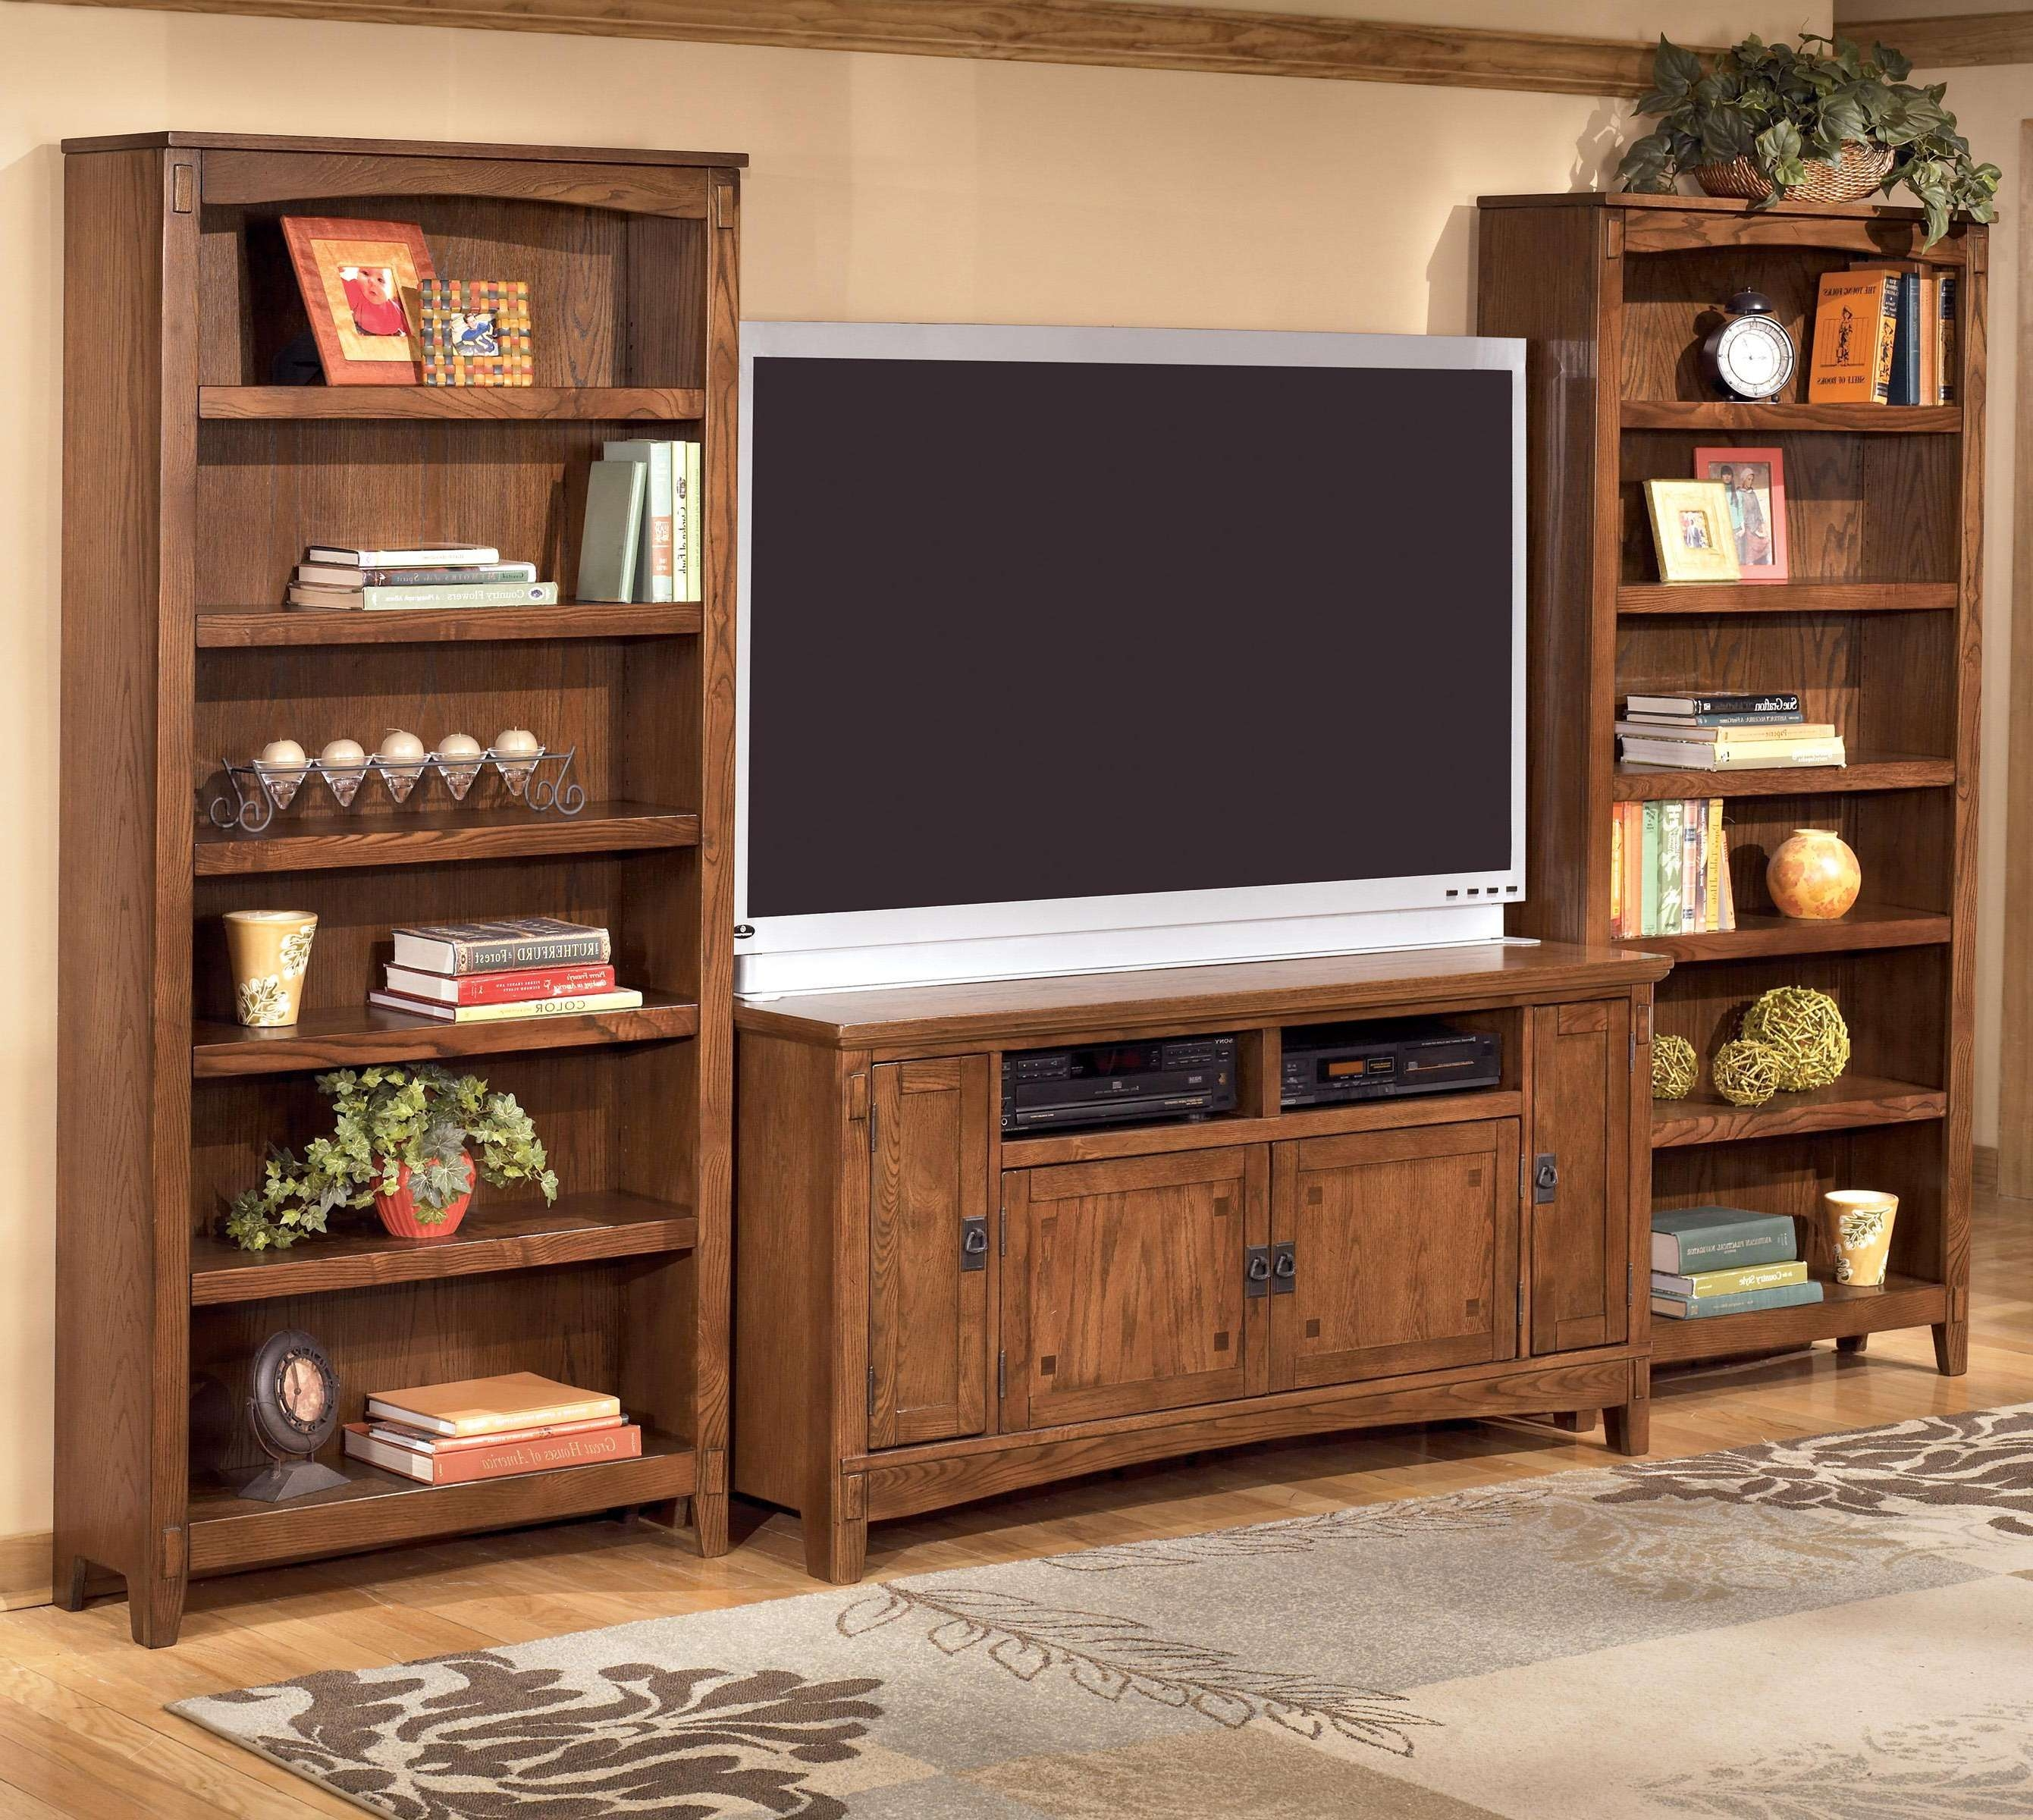 60 Inch Tv Stand & 2 Large Bookcasesashley Furniture | Wolf For Tv Cabinets And Bookcase (Gallery 2 of 20)